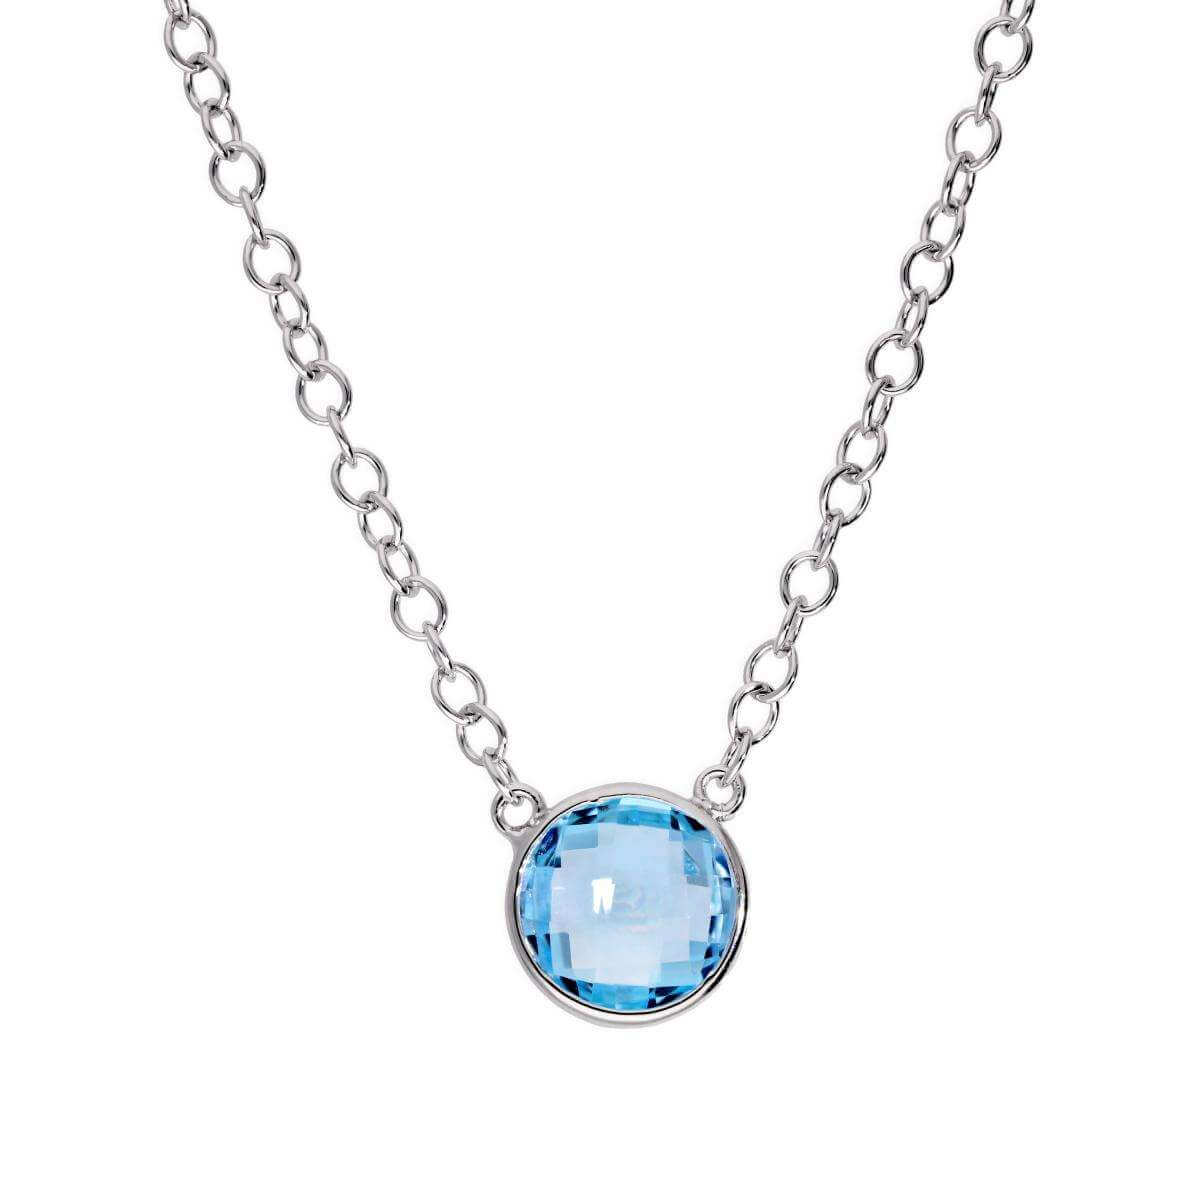 Sterling Silver & Sky Blue Round Topaz Necklace - 18 inch with 2 inch Extender